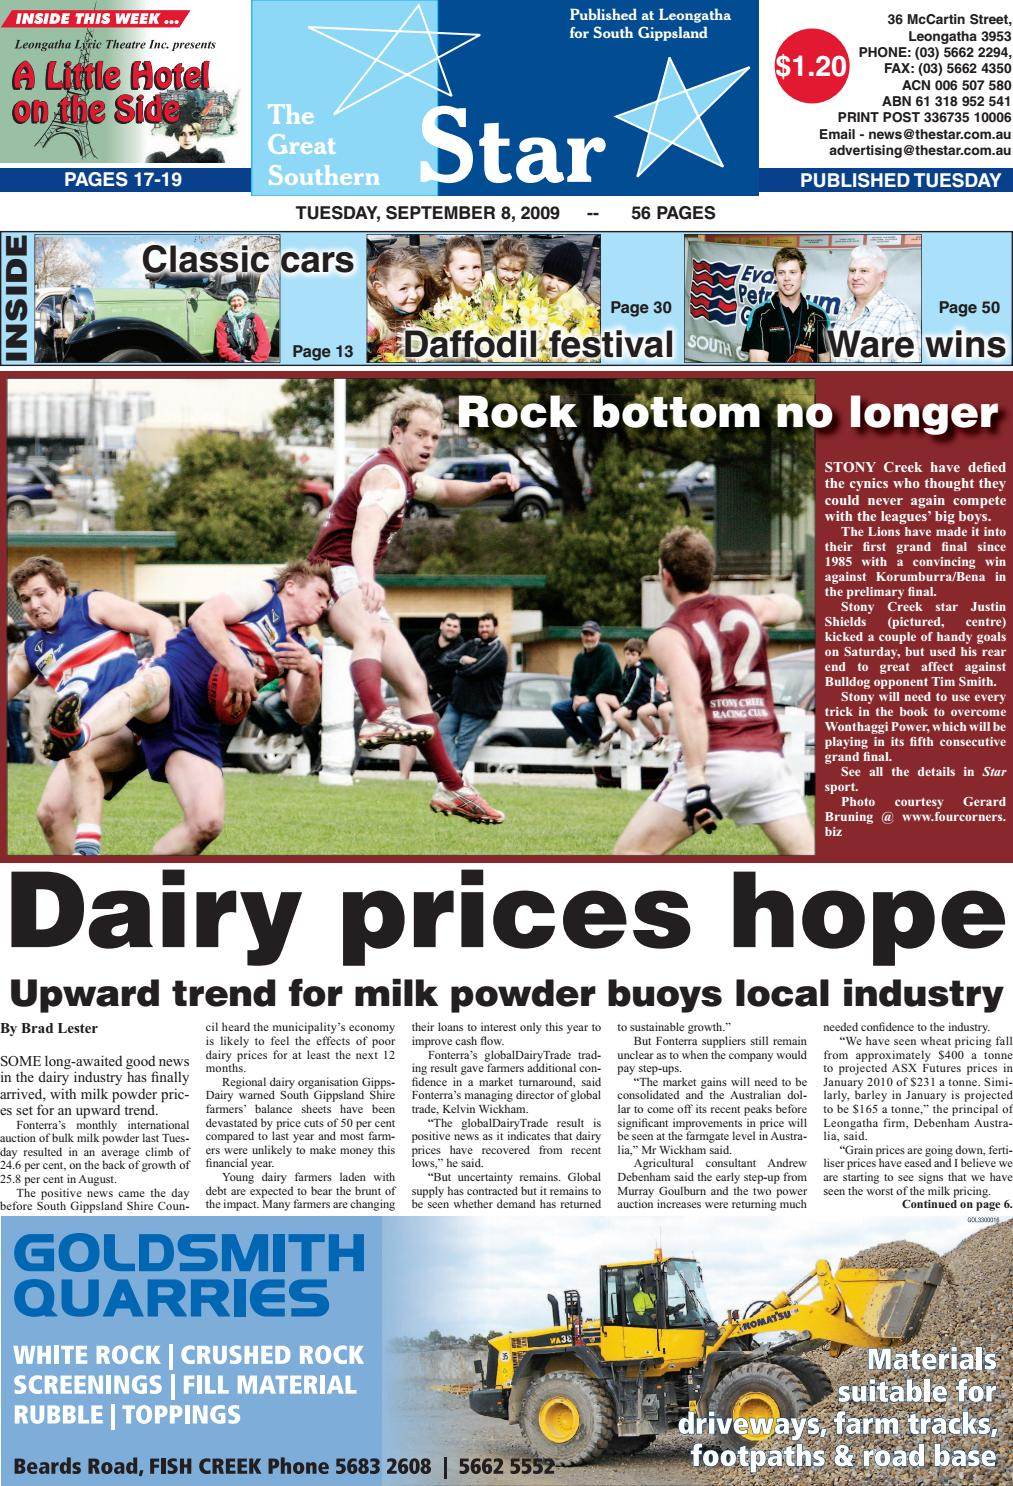 The Great Southern Star September 8 2009 By The Great Southern Star Issuu